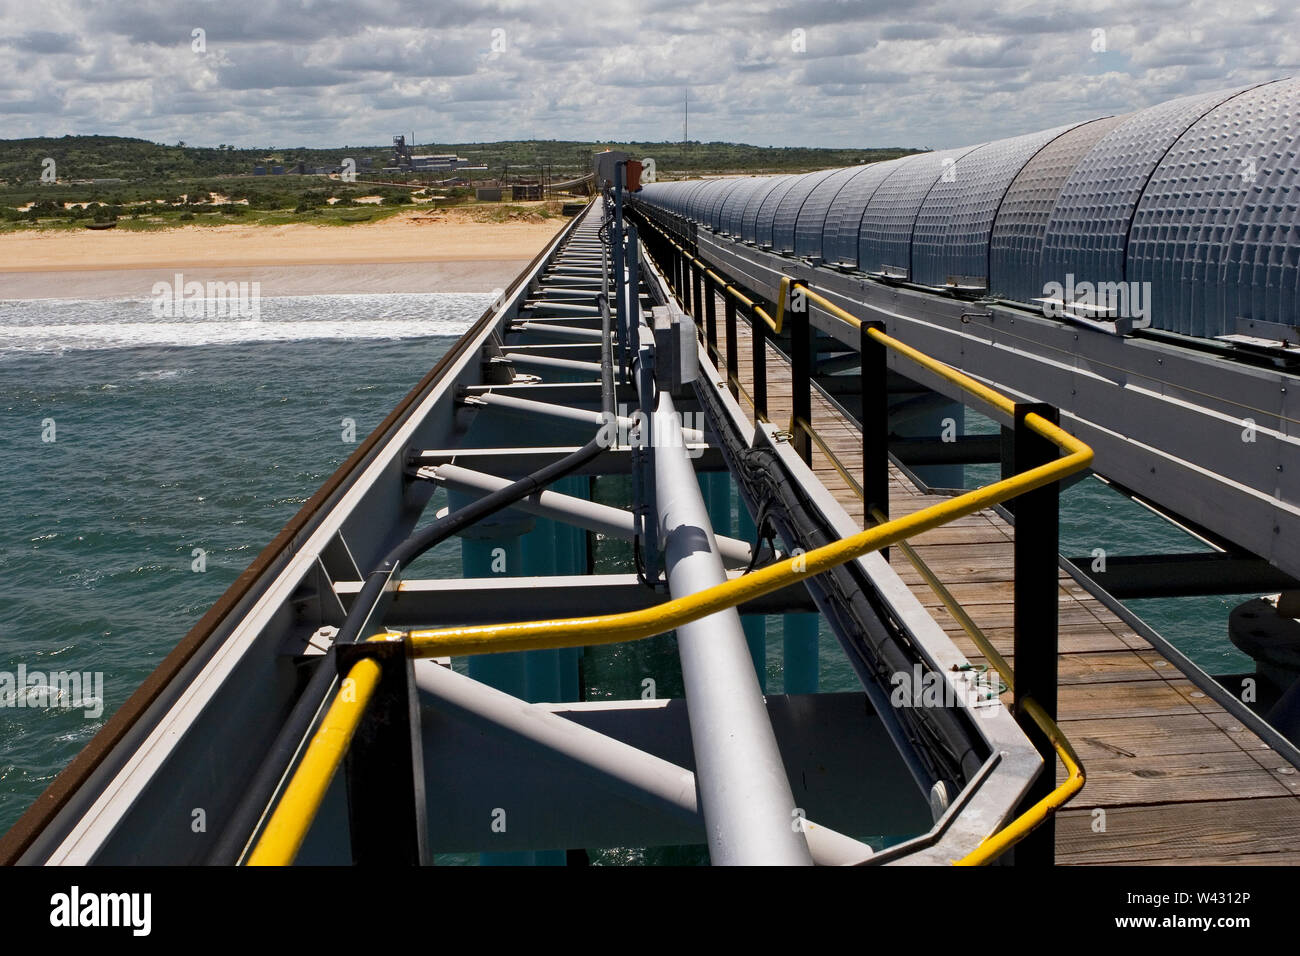 Mining, managing & transporting of titanium mineral sands. 400m long jetty supporting end of 2.4km overland covered conveyor and pedestrian walkway. Stock Photo